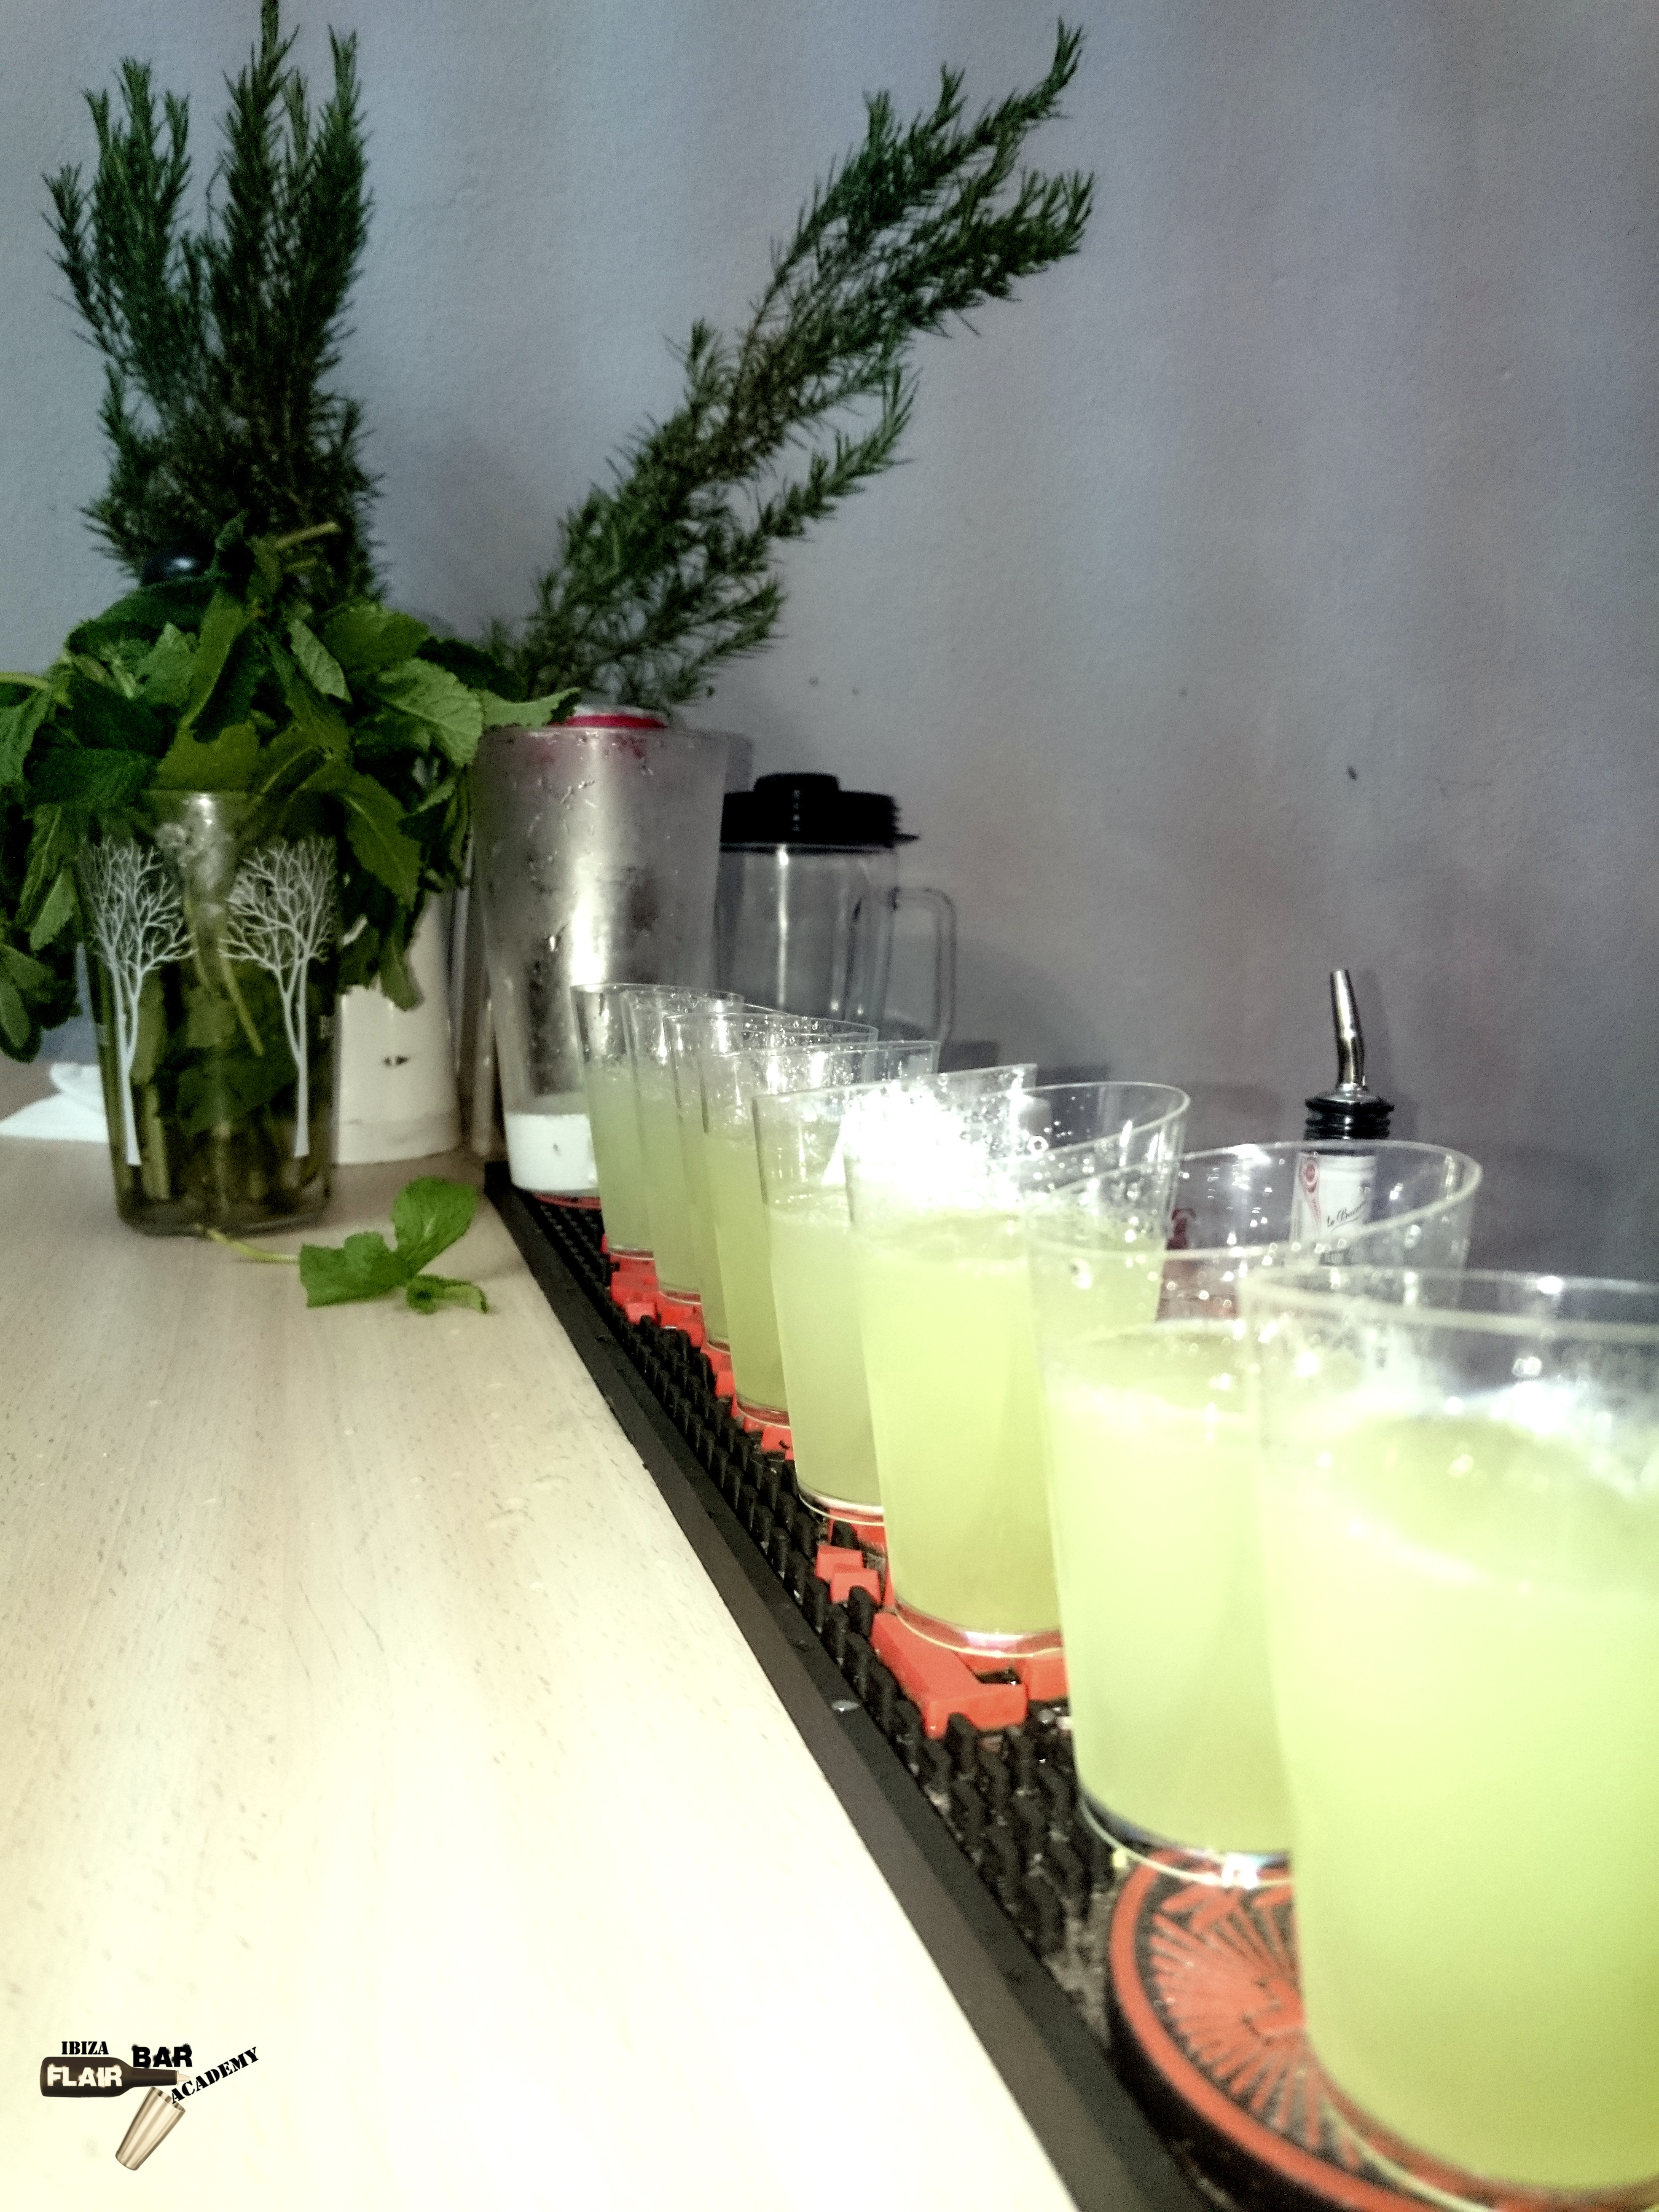 Curso de barman en Ibiza, bartender school cocktail bar service Ibiza